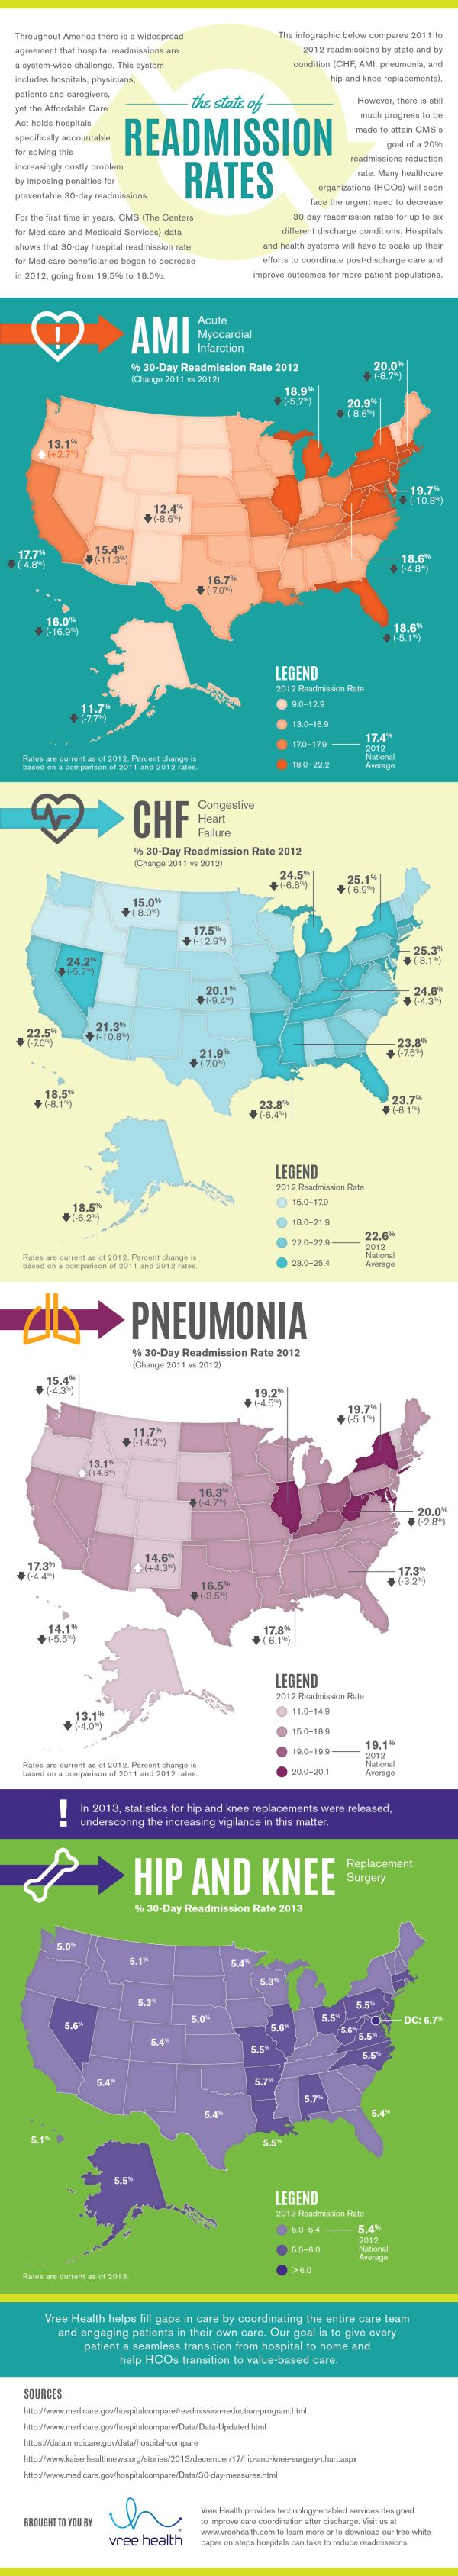 The State of Readmissions: Hospital Readmissions by State